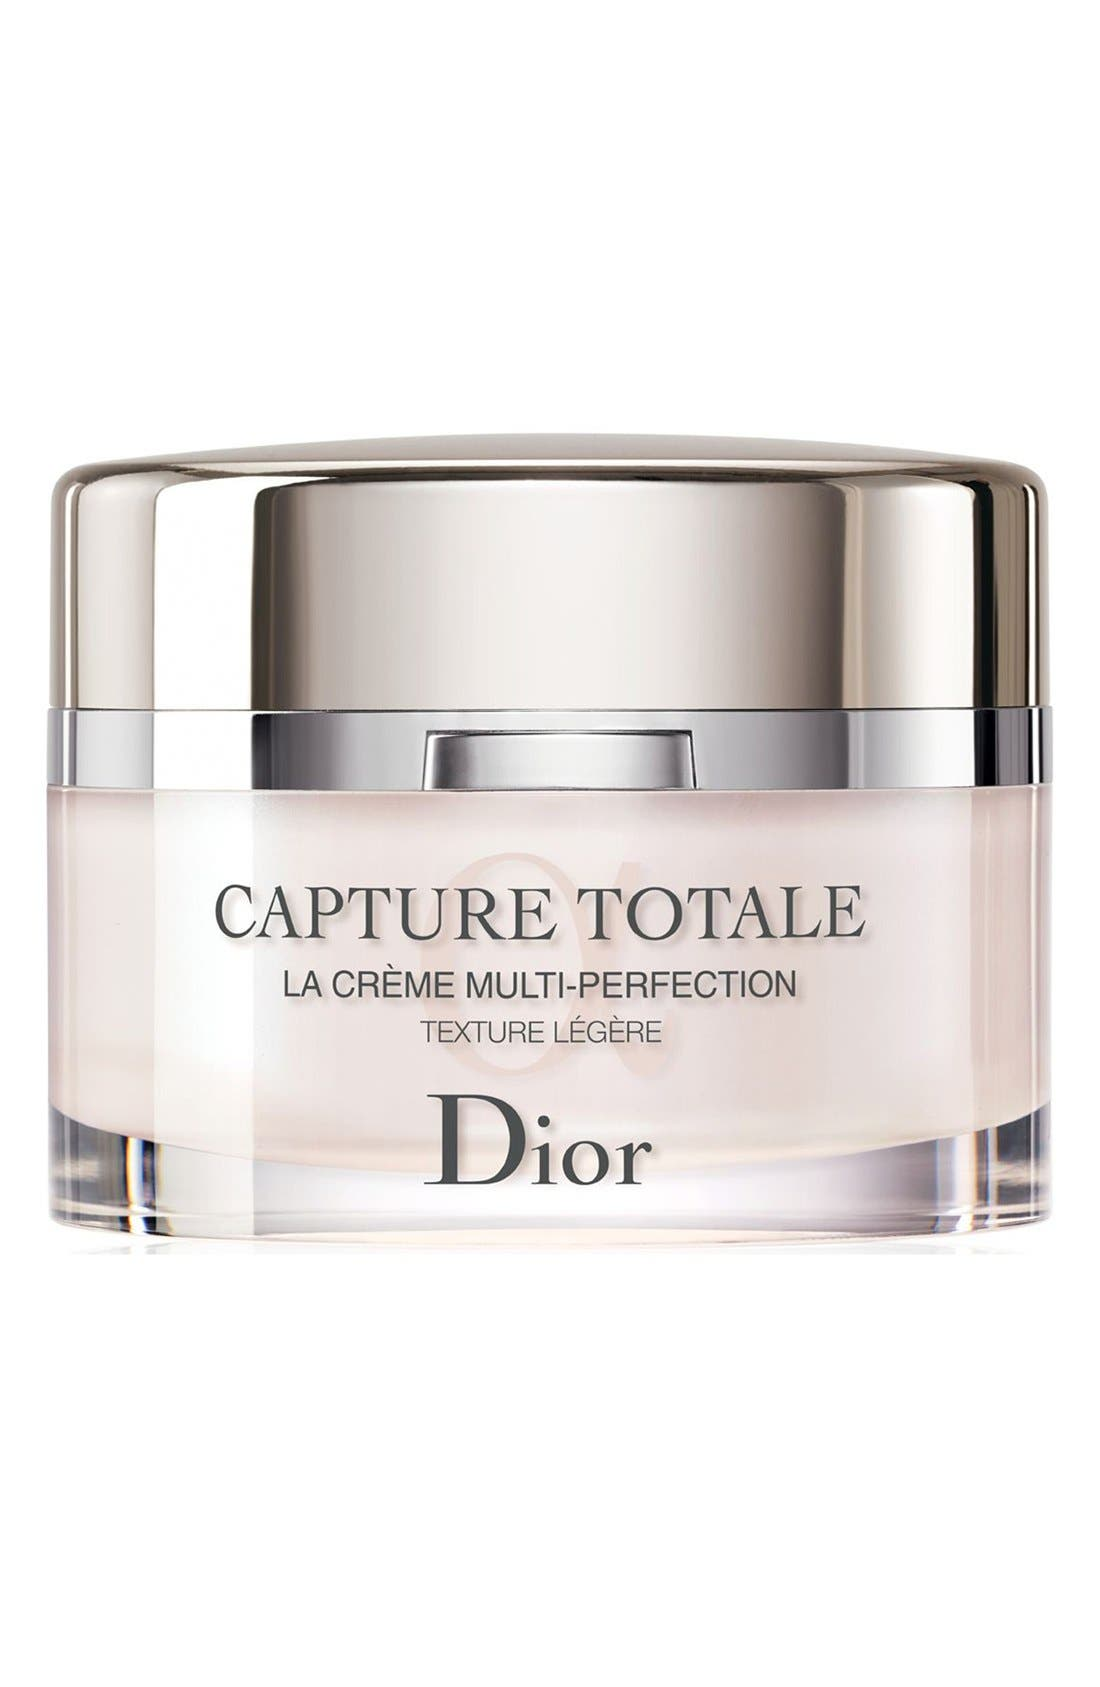 Capture Totale - Light Texture Multi-Perfection Creme,                             Main thumbnail 1, color,                             NO COLOR